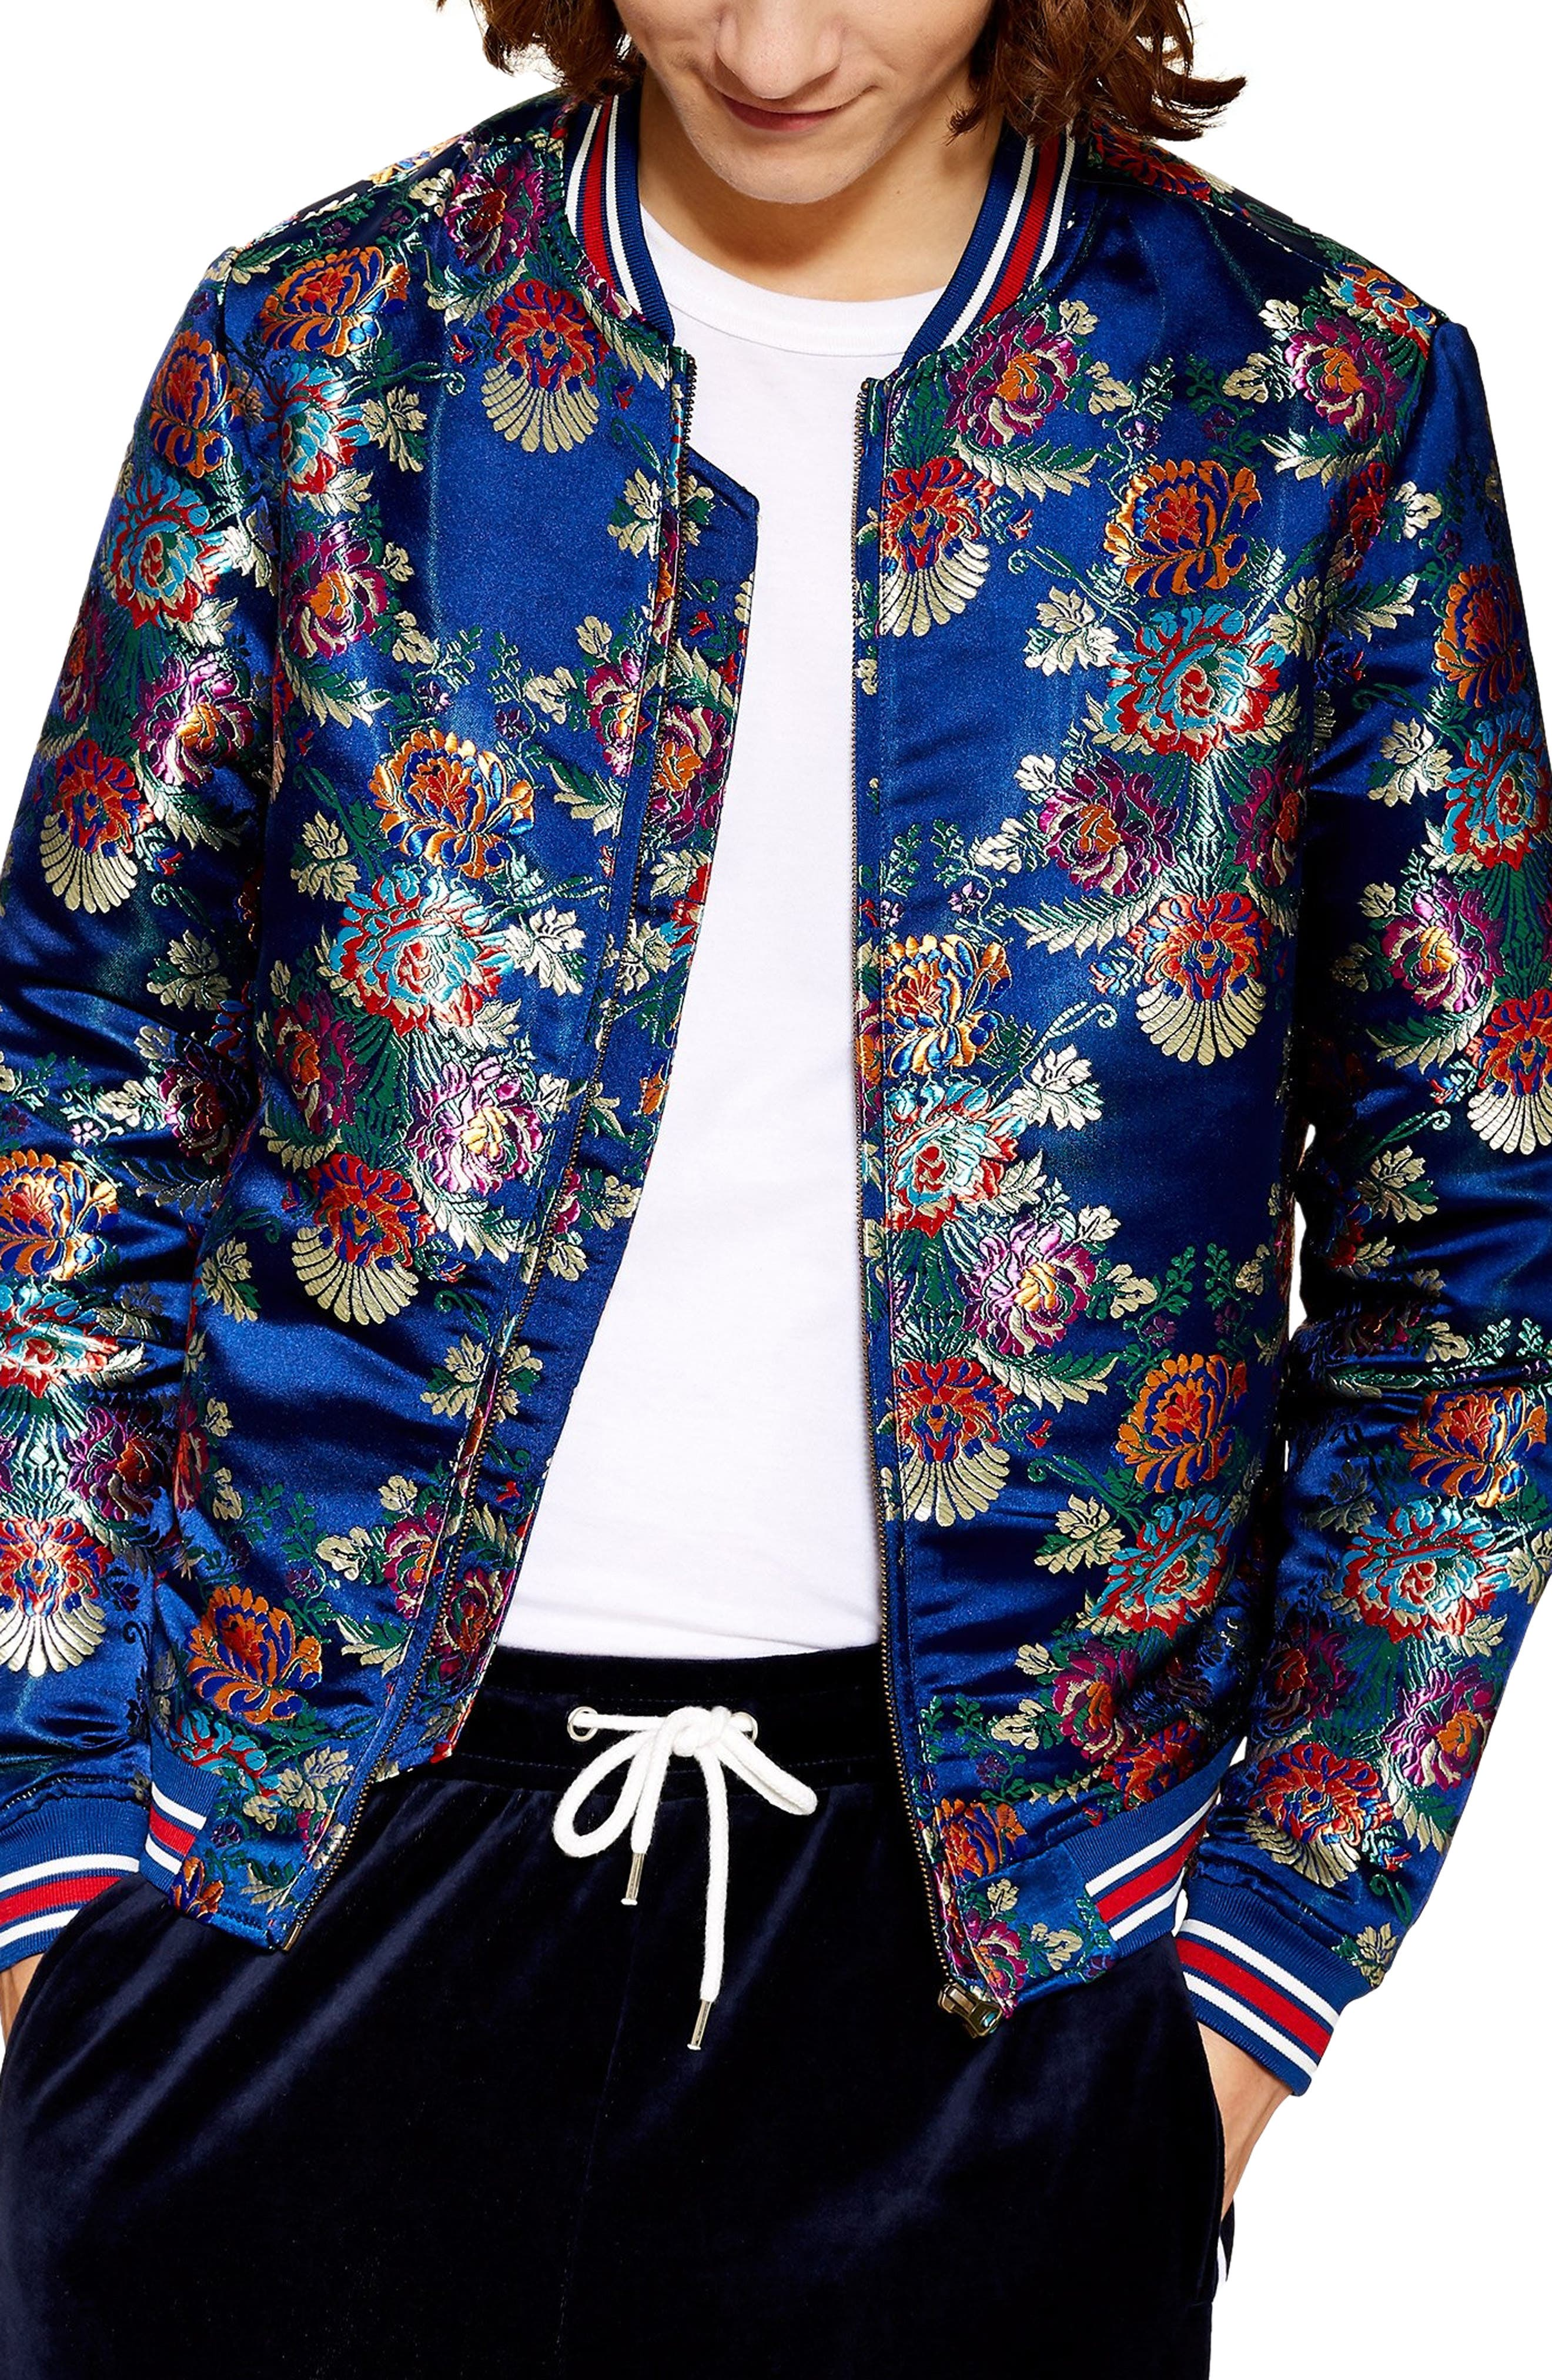 Chandler Classic Bomber Jacket,                             Main thumbnail 1, color,                             NAVY MULTI